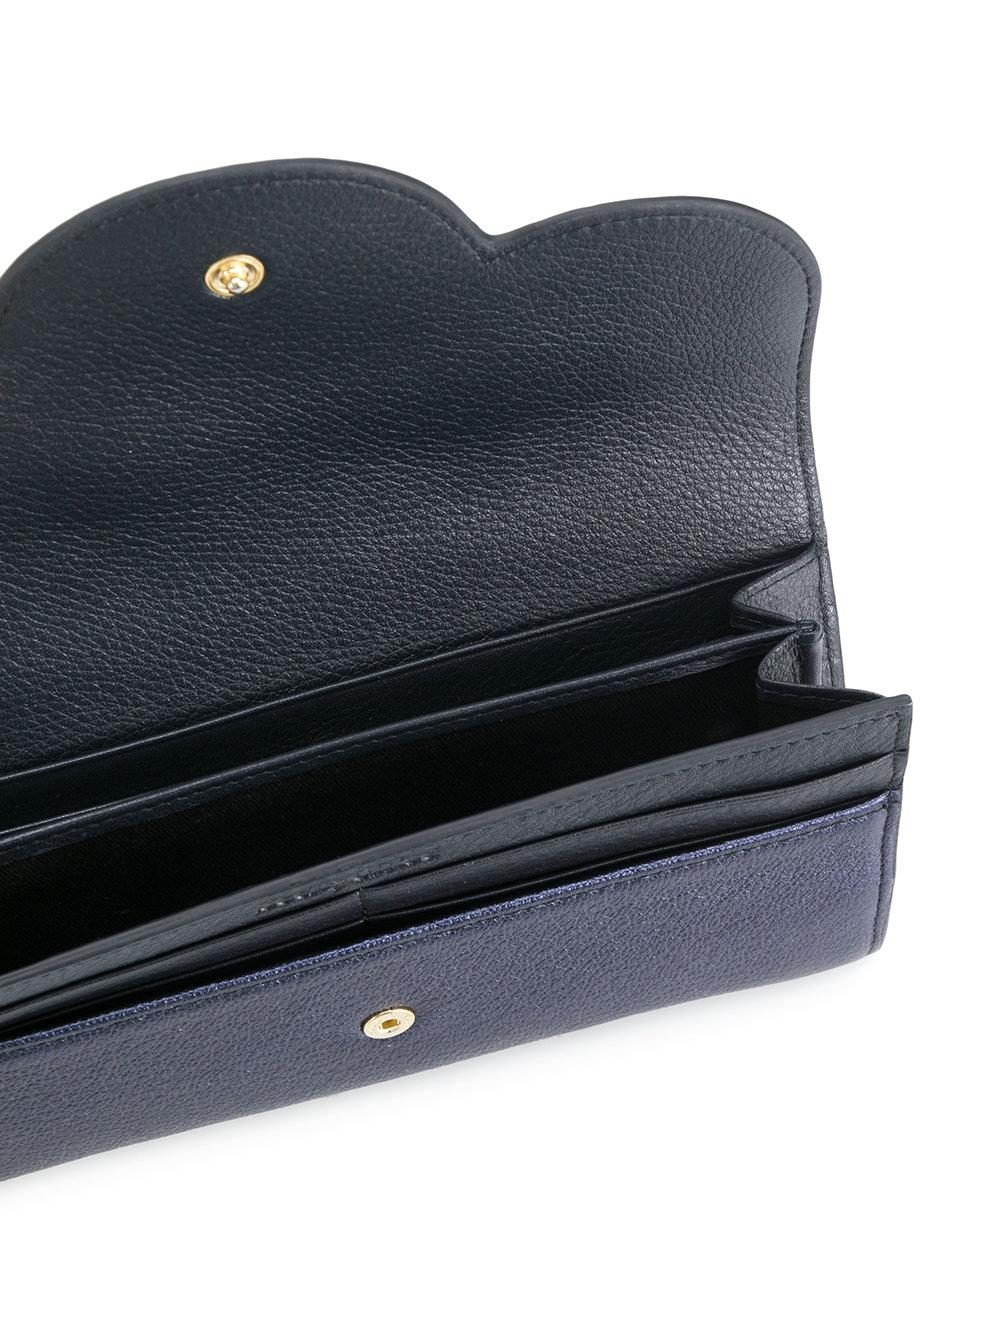 90ccf2f7c1 See By Chloé Blue Polina Long Flap Wallet